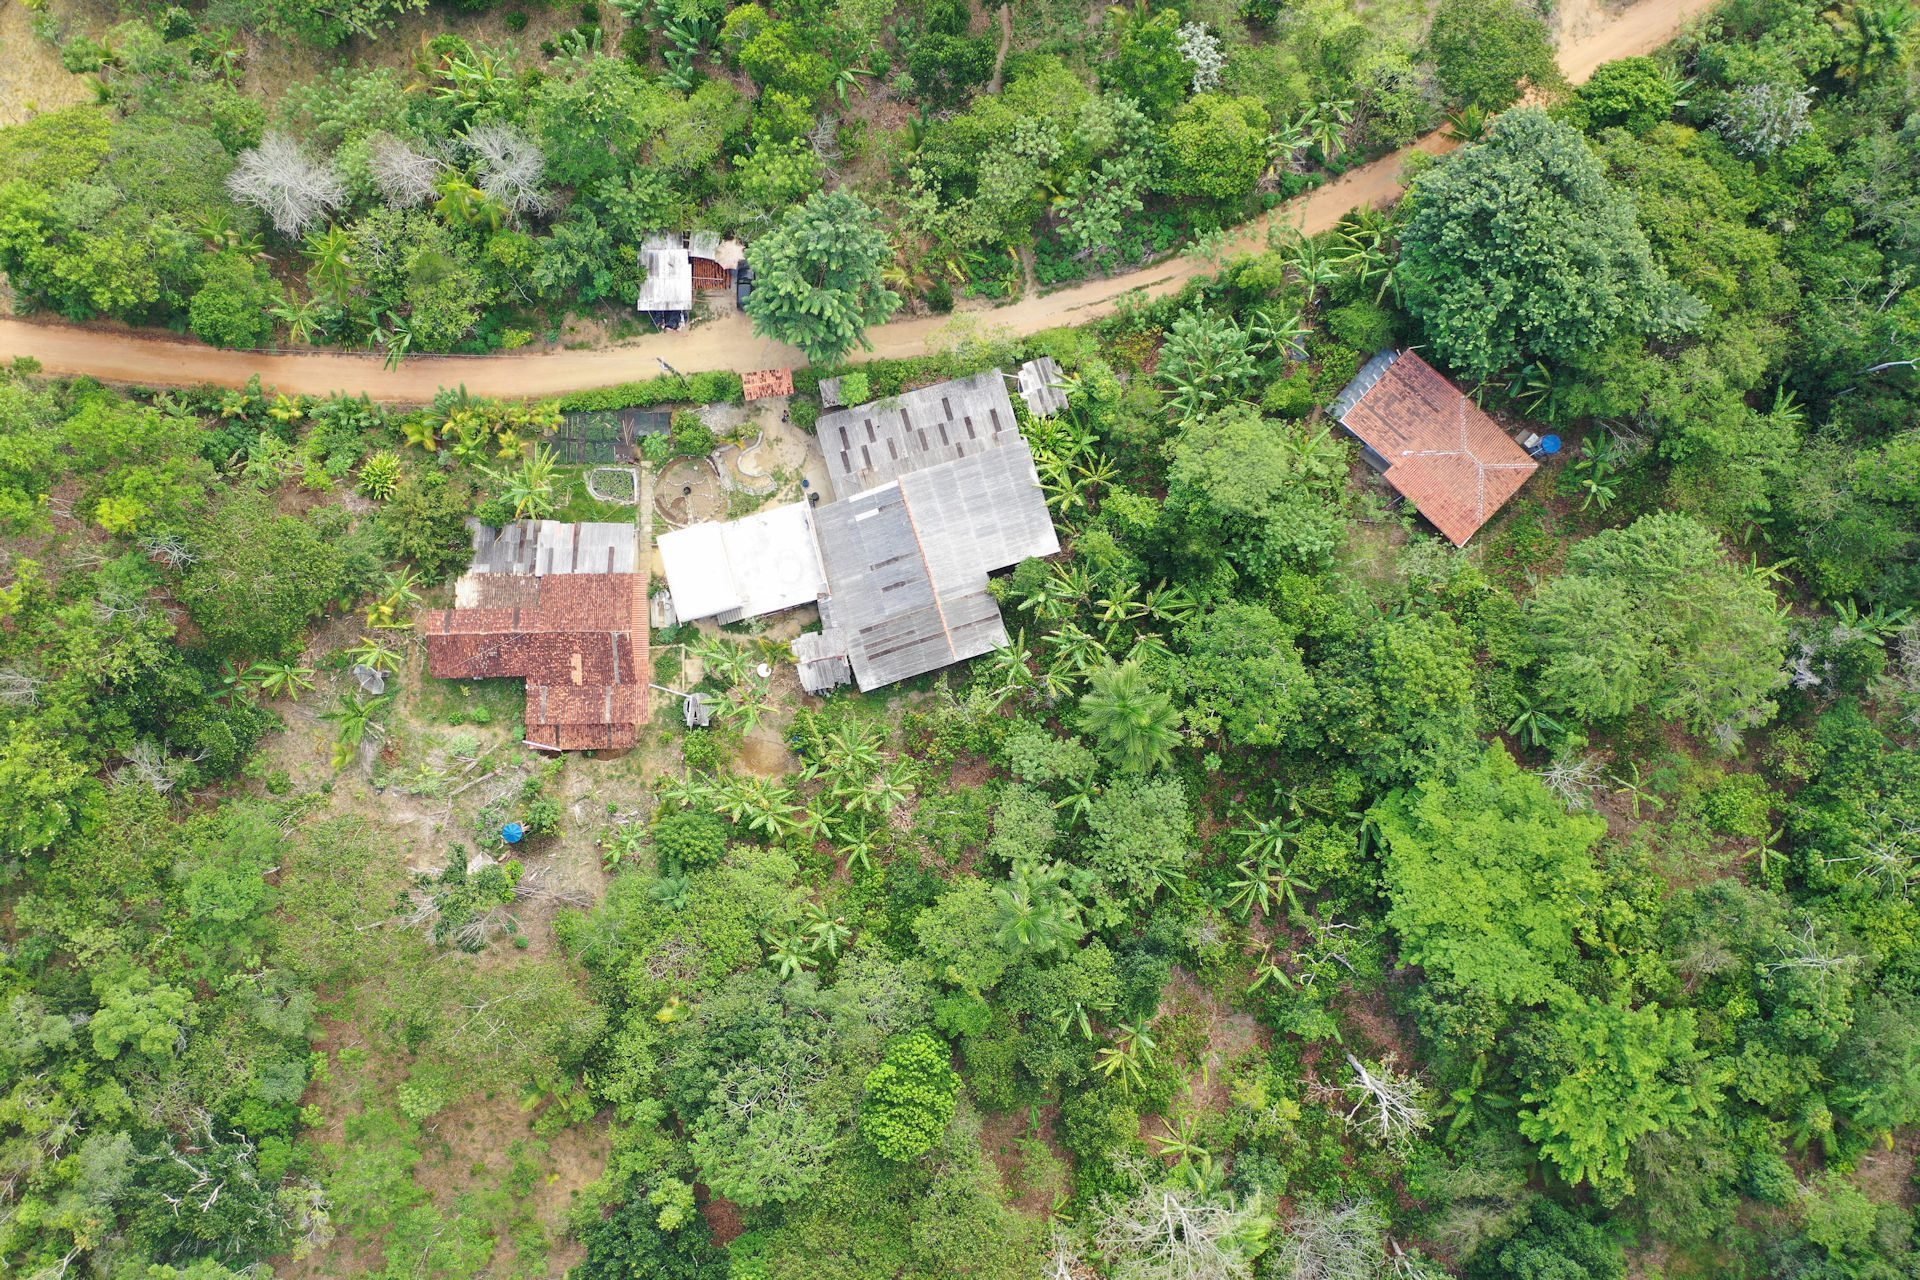 ©KilomboTenode – A birdseye view of Kilombo Tenodés centre, with kitchen garden and the wider syntrophic rainforest